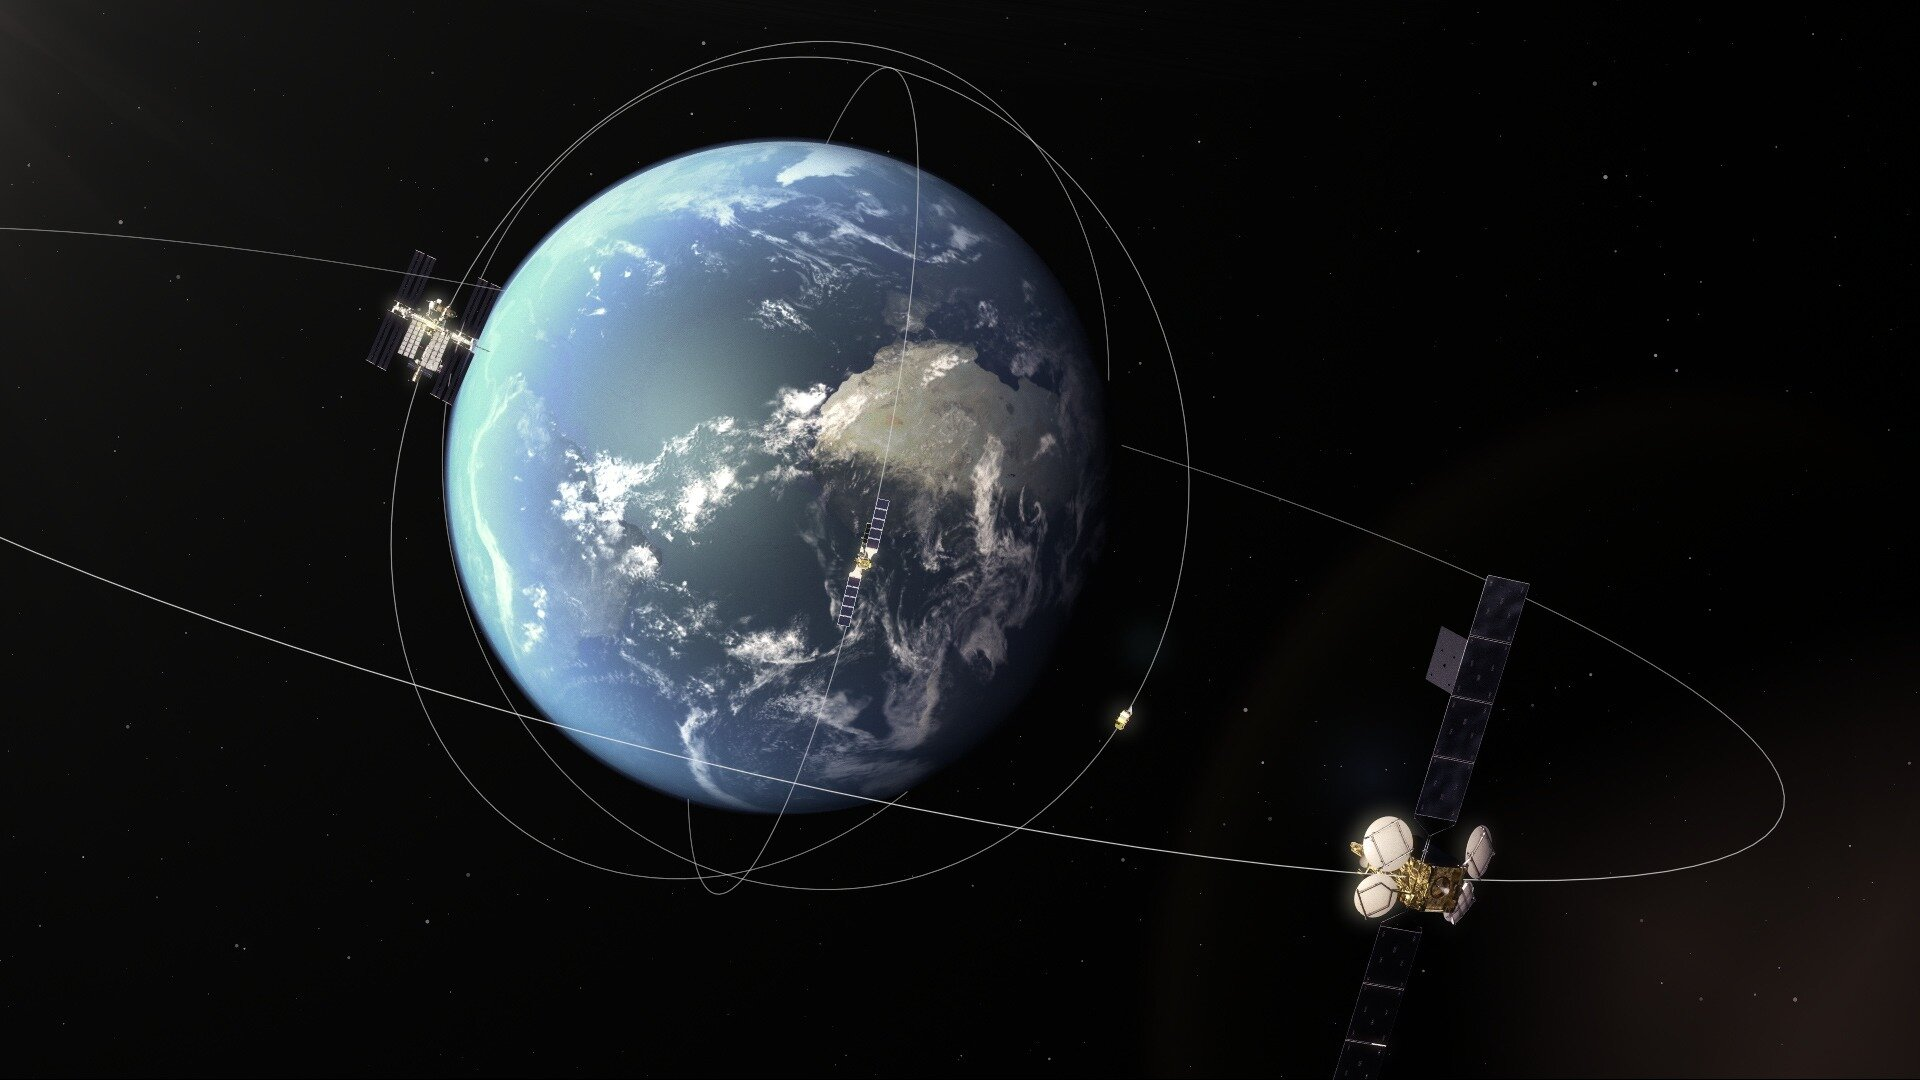 Geostationary EDRS-A over three lower orbiting satellites